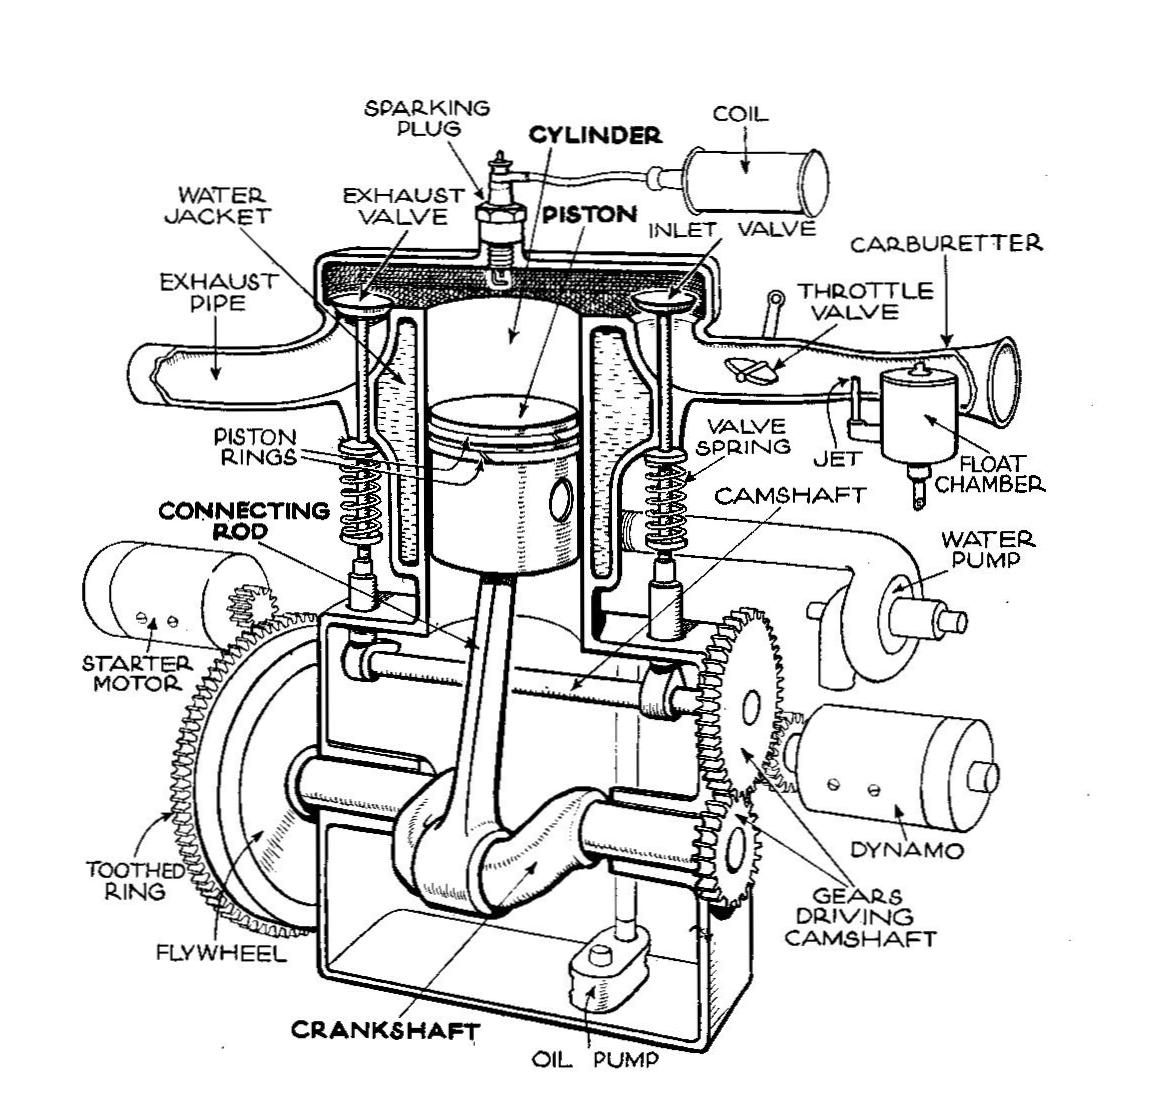 Flathead engine on stirling engine design